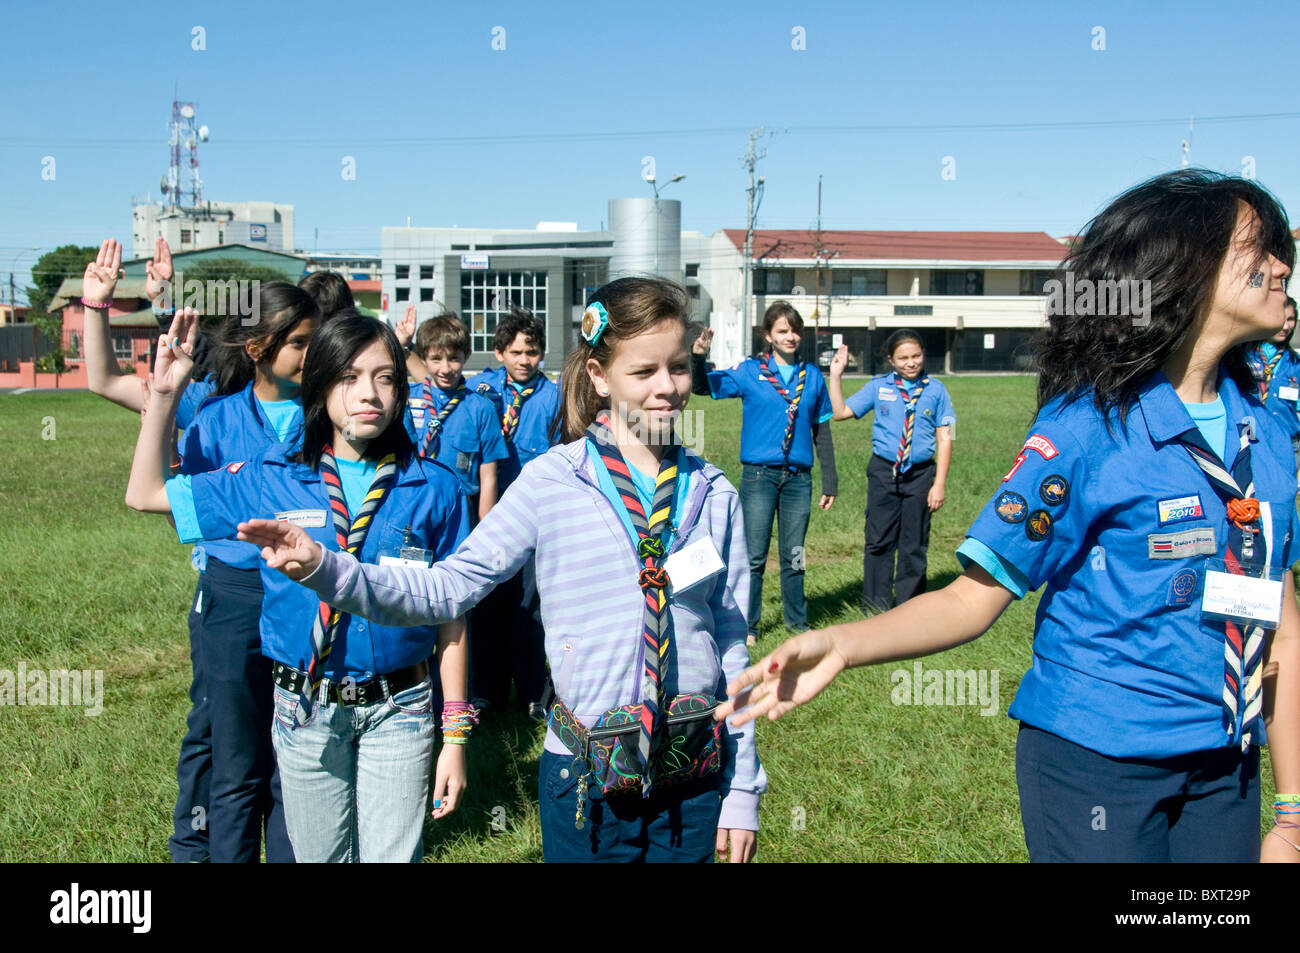 Girl Scouts America Stock Photos & Girl Scouts America Stock Images